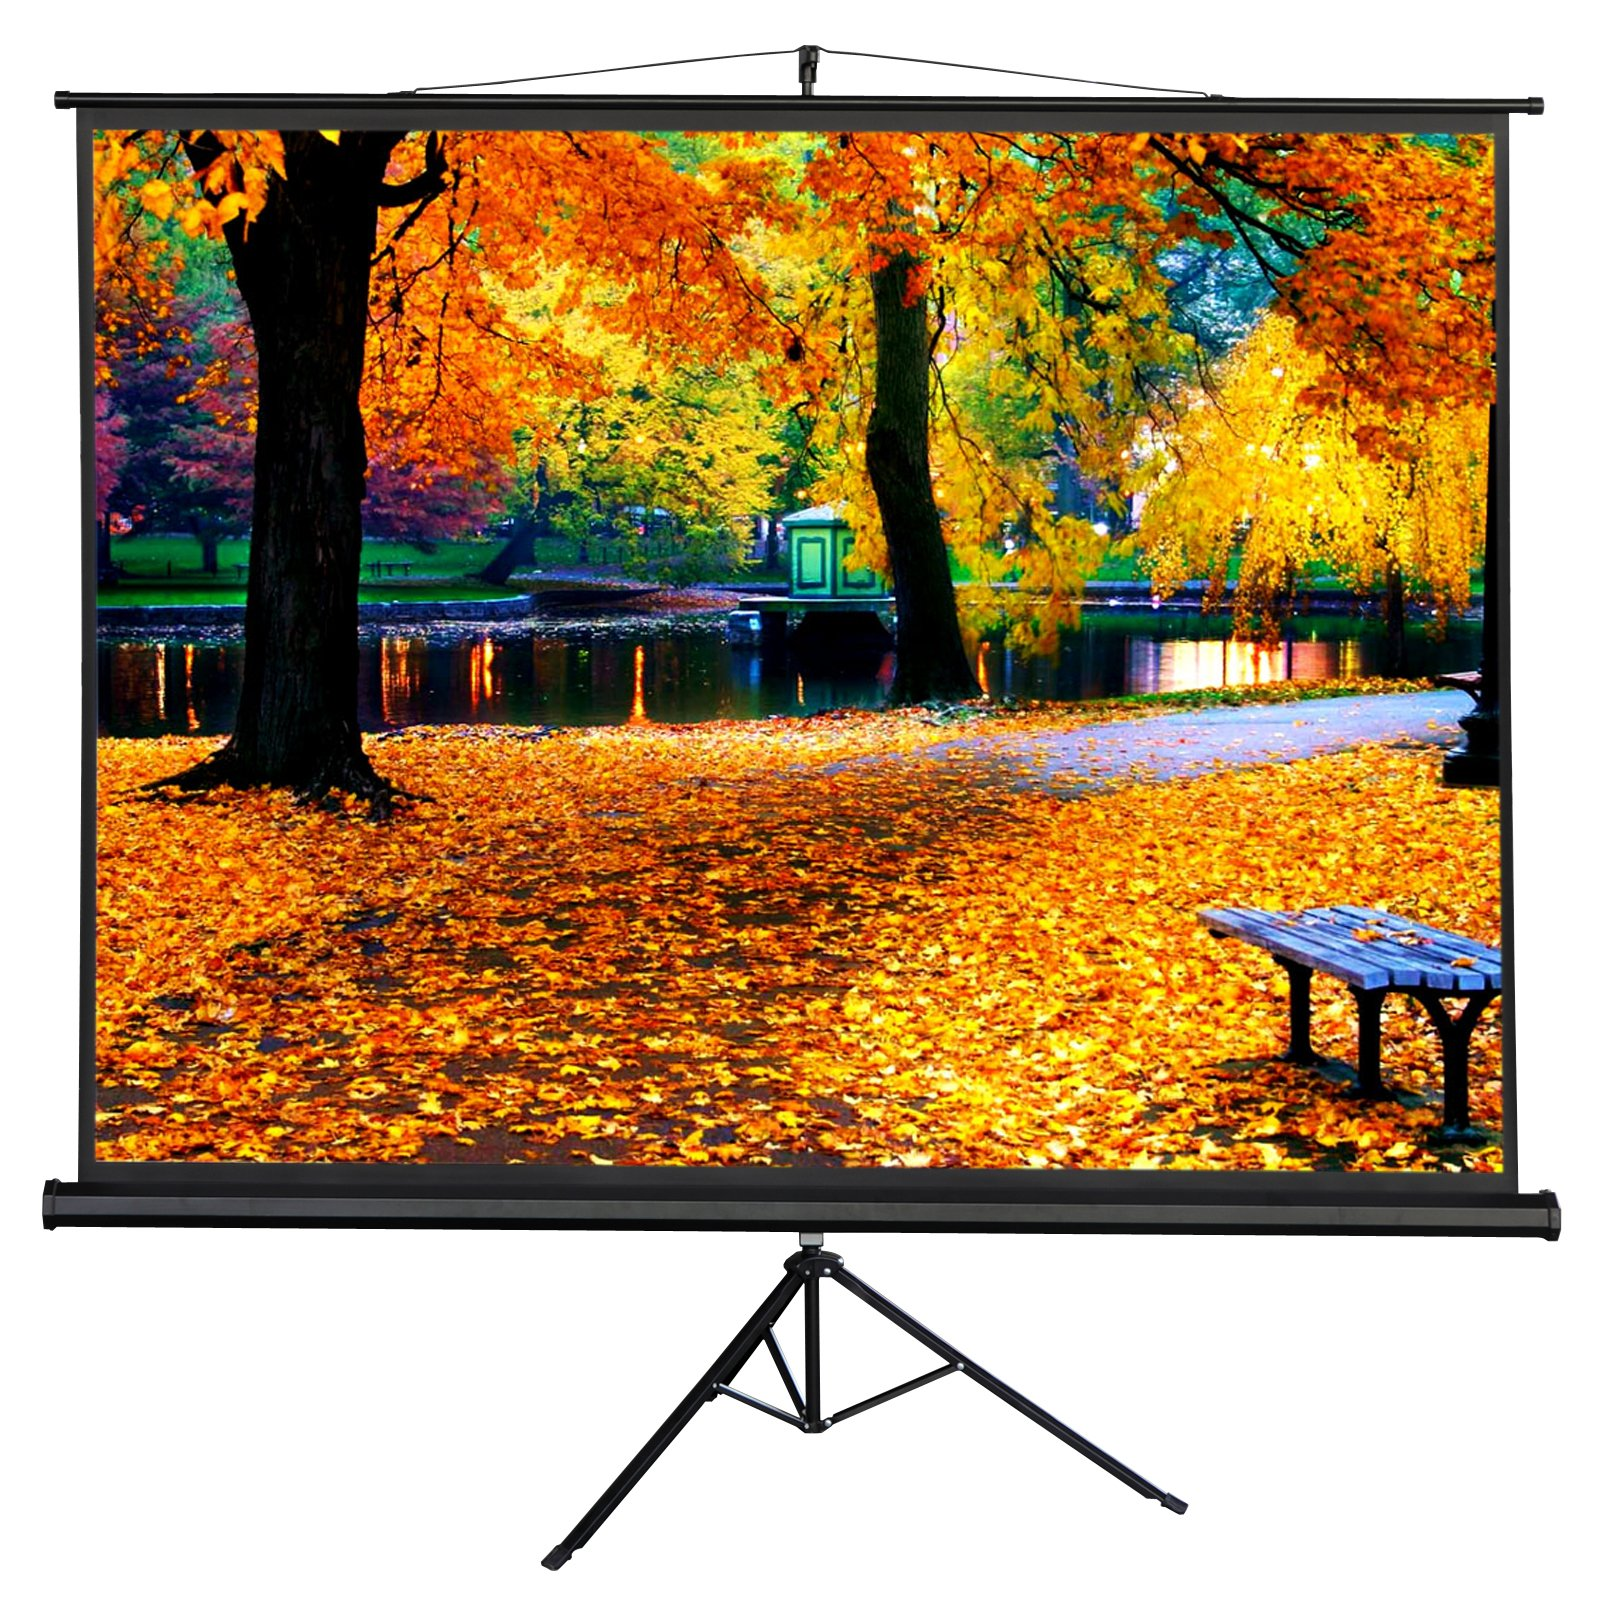 100'' Collapsible Projector Screen, Ultra Portable Pull Up Foldable Stand Tripod,4:3 Projection HD for Outdoor Indoor Home Cinema Theater Education (90'' x 56'')